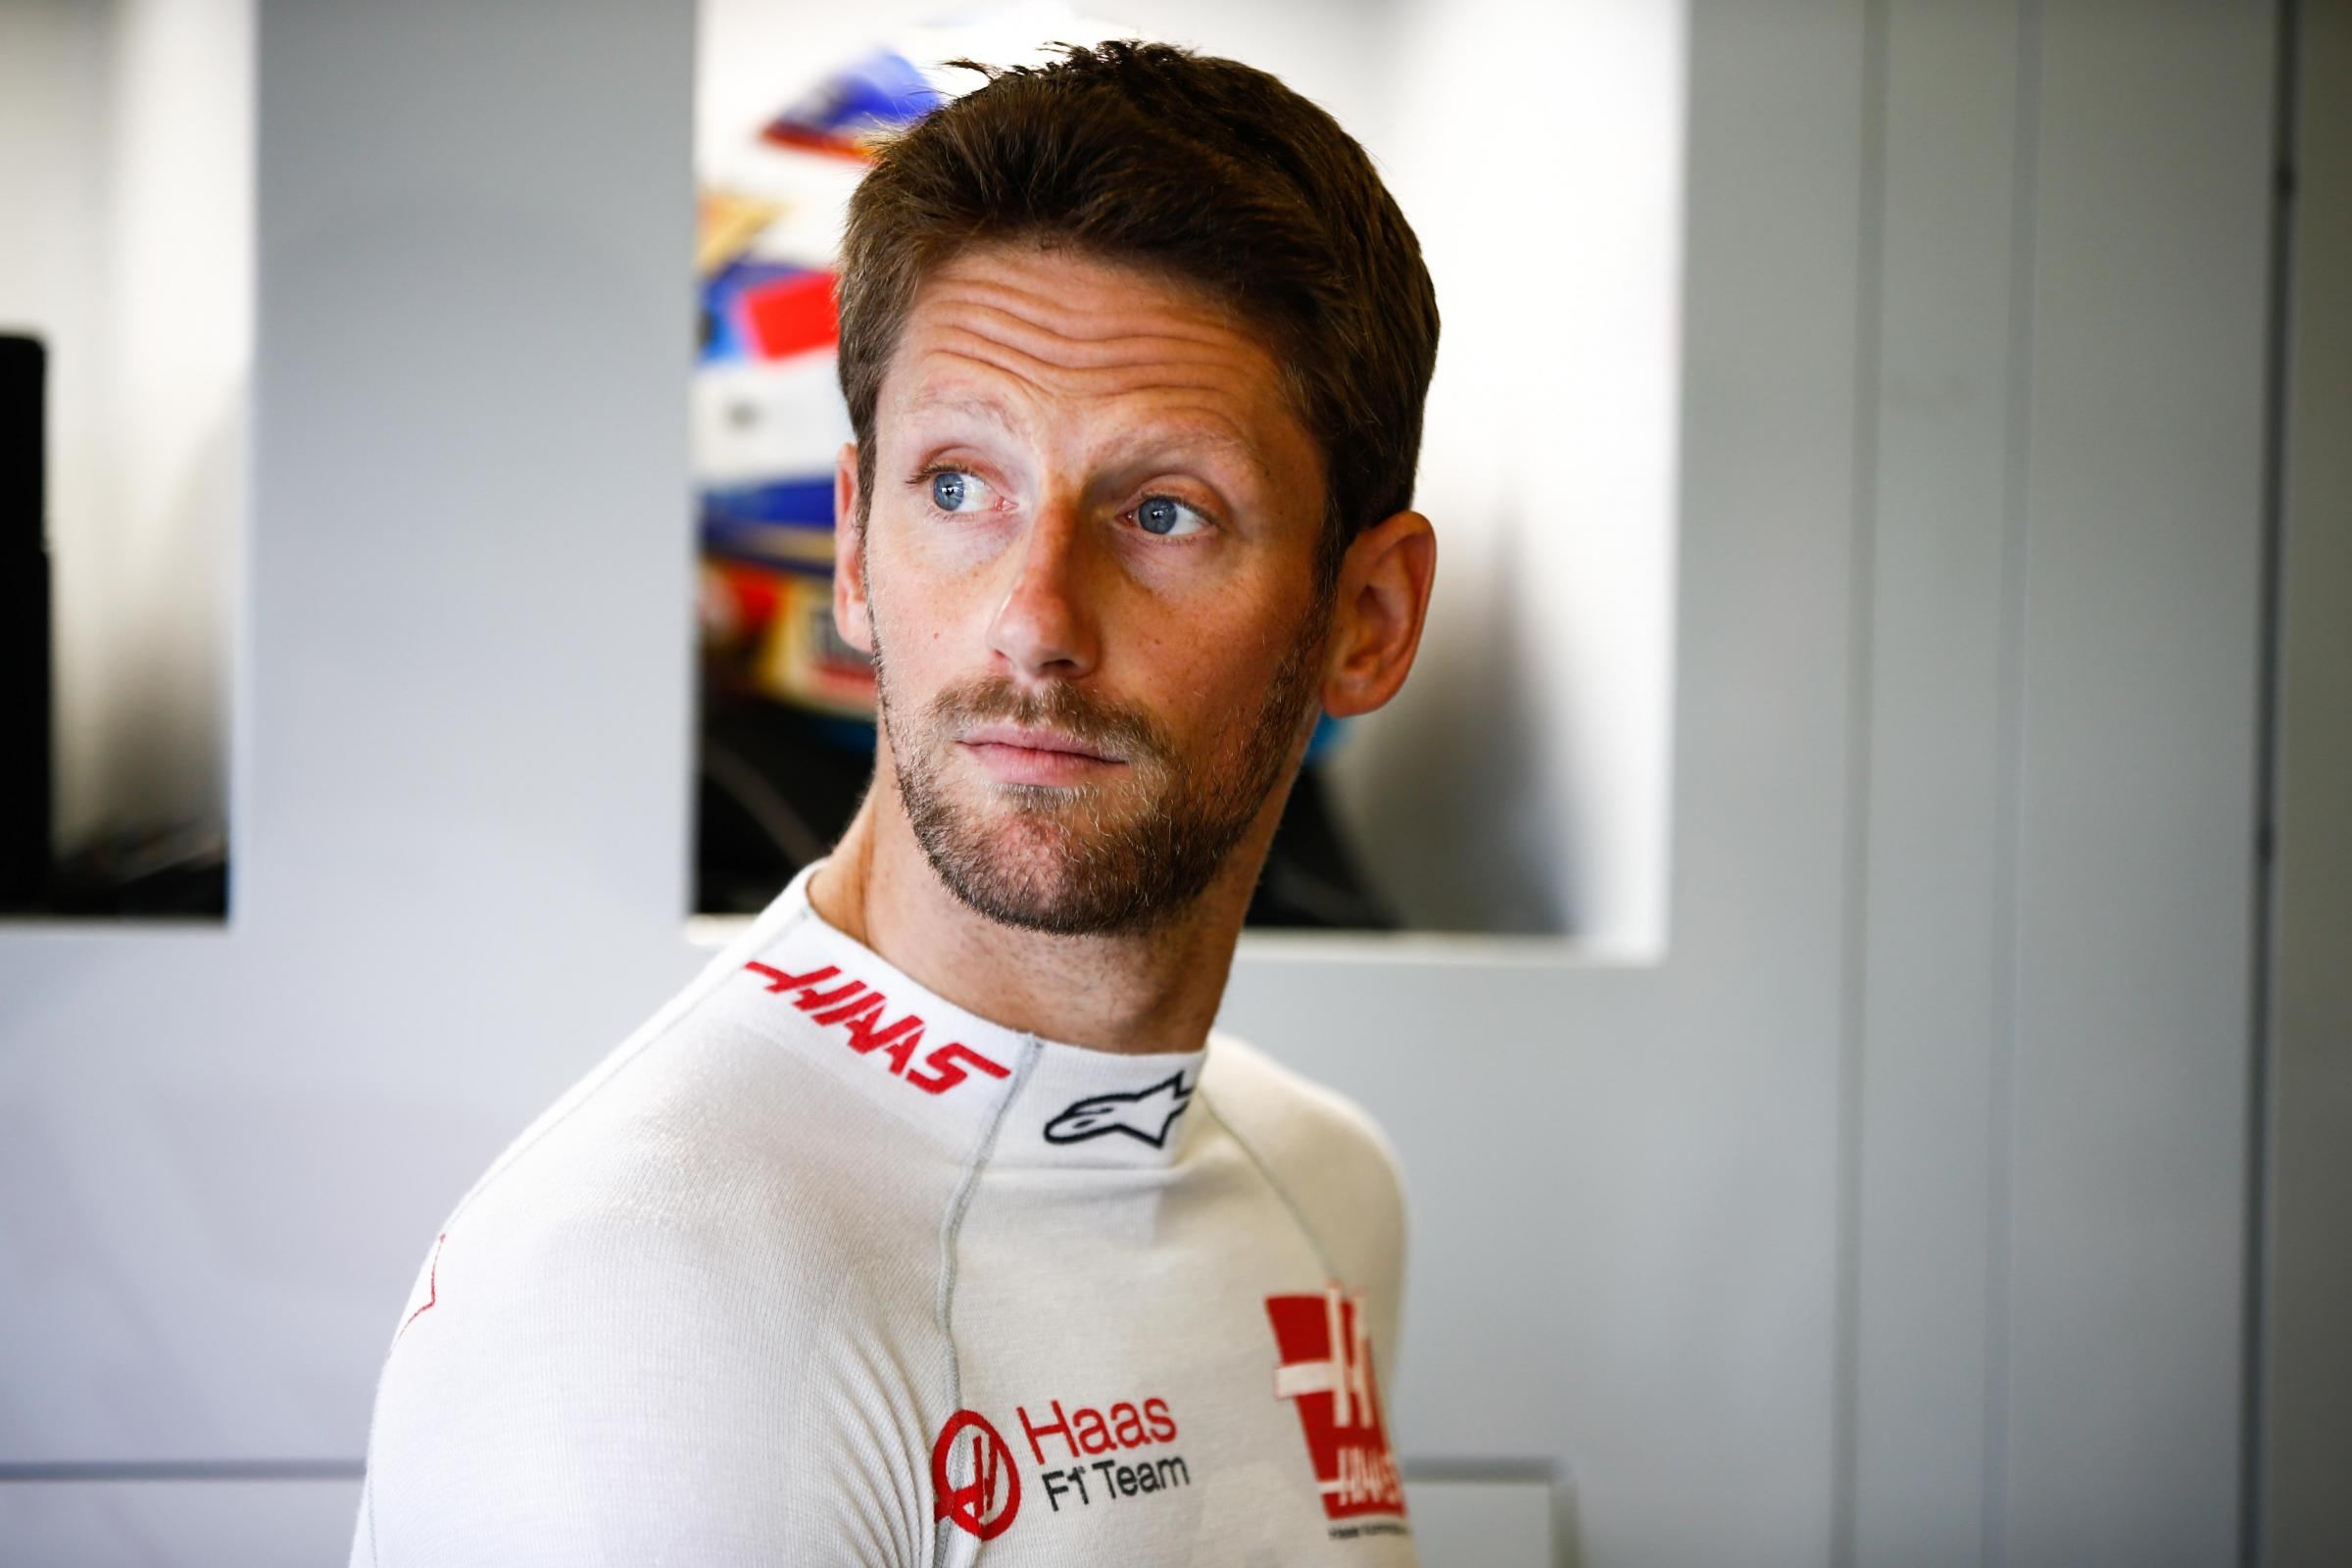 INCIDENT: Haas driver Romain Grosjean was involved in an incident with Renault's Carlos Sainz at Silverstone Picture: Andy Hone